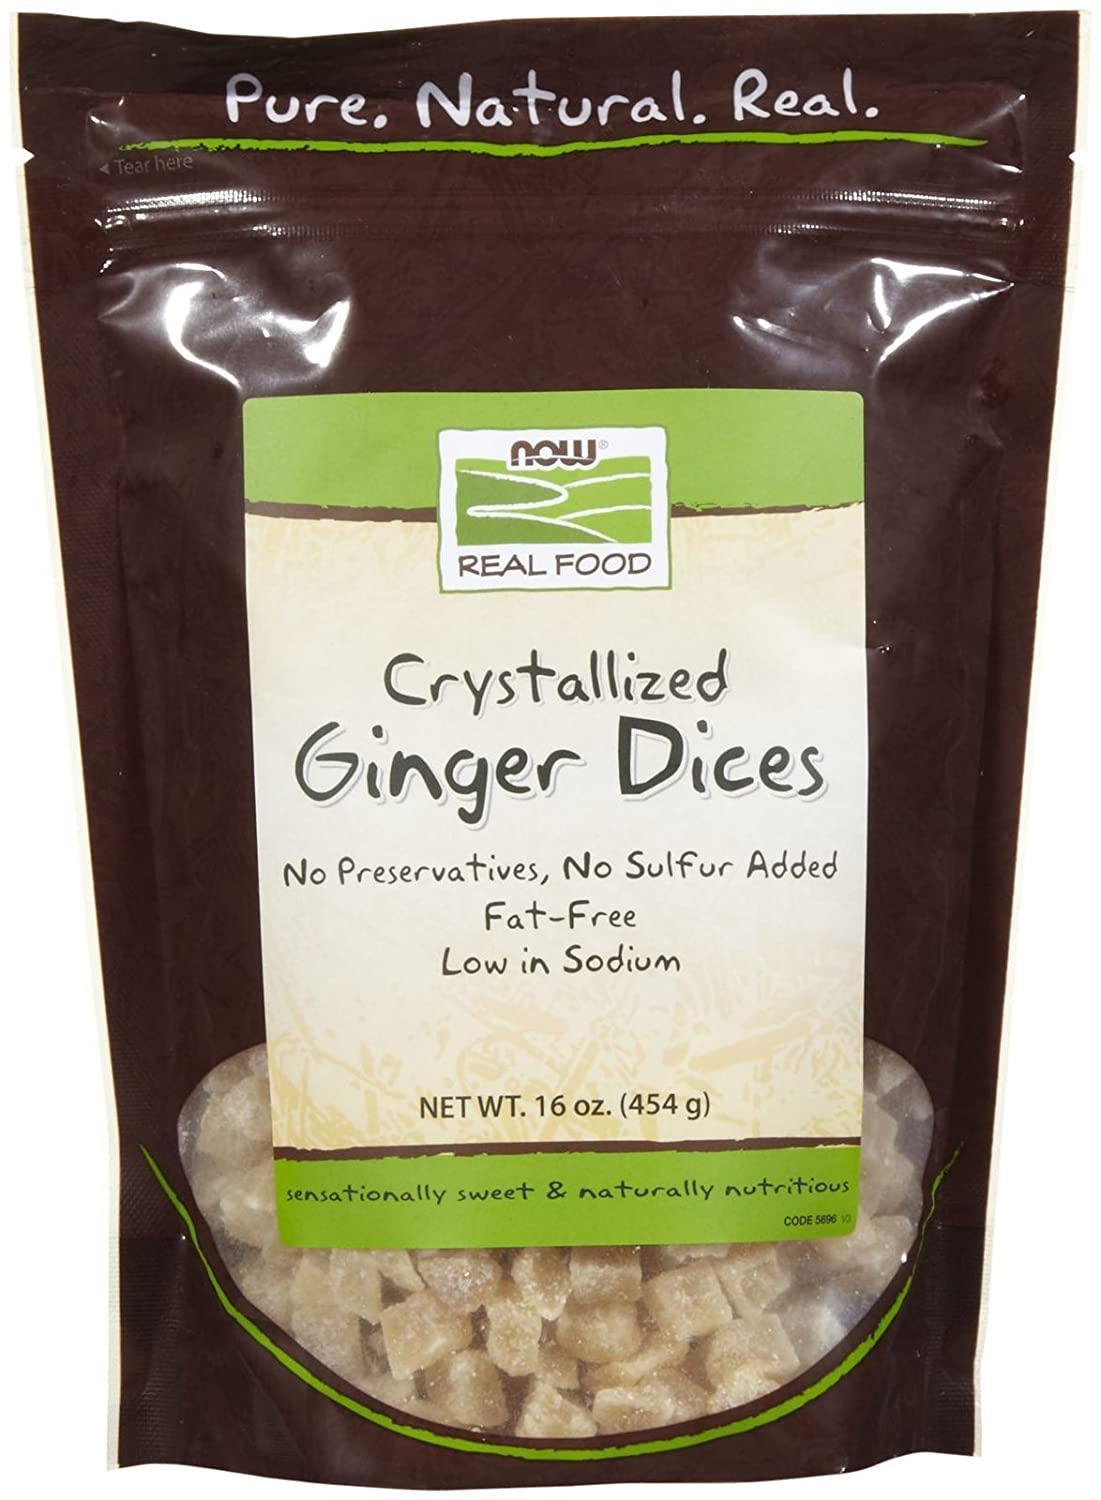 Now Foods Crystallized Ginger Dices - 1 lb